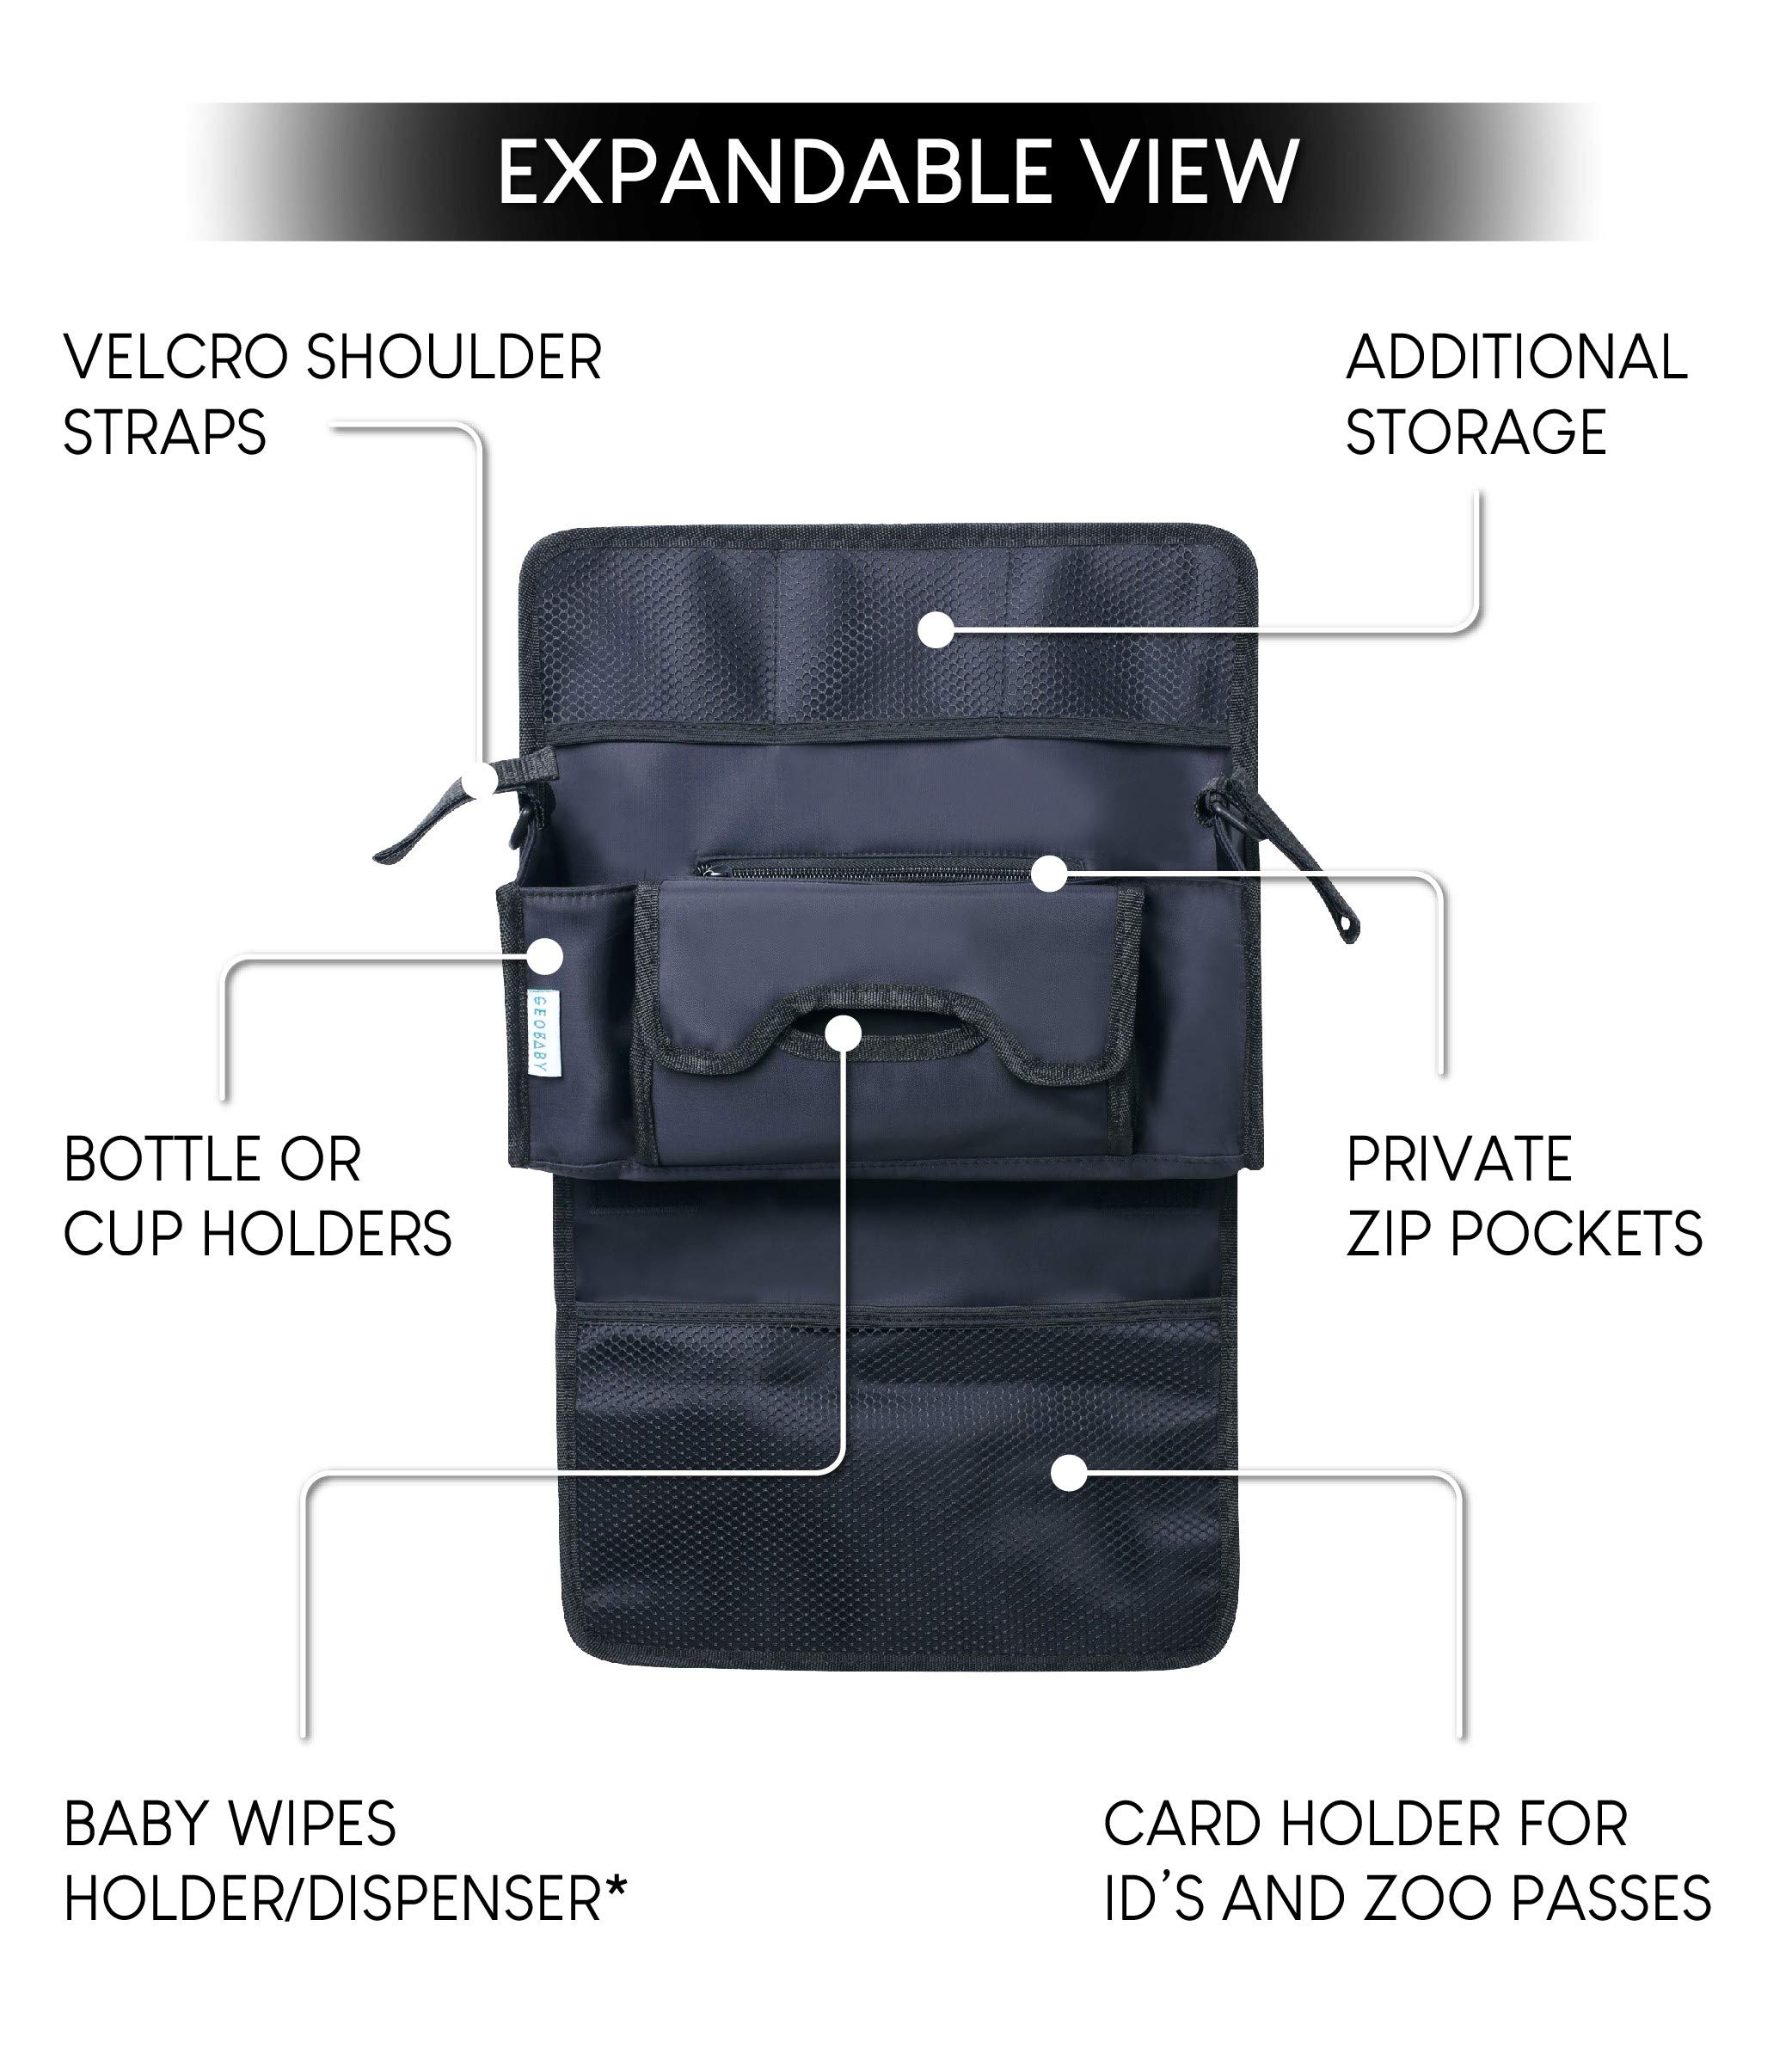 GeoBaby Modern and Universal Extra Storage Stroller Organizer With Cup Holders, Diaper Compartments, Wipes Dispenser, Phone Pockets, Baby Shower Idea by GeoBaby (Image #5)